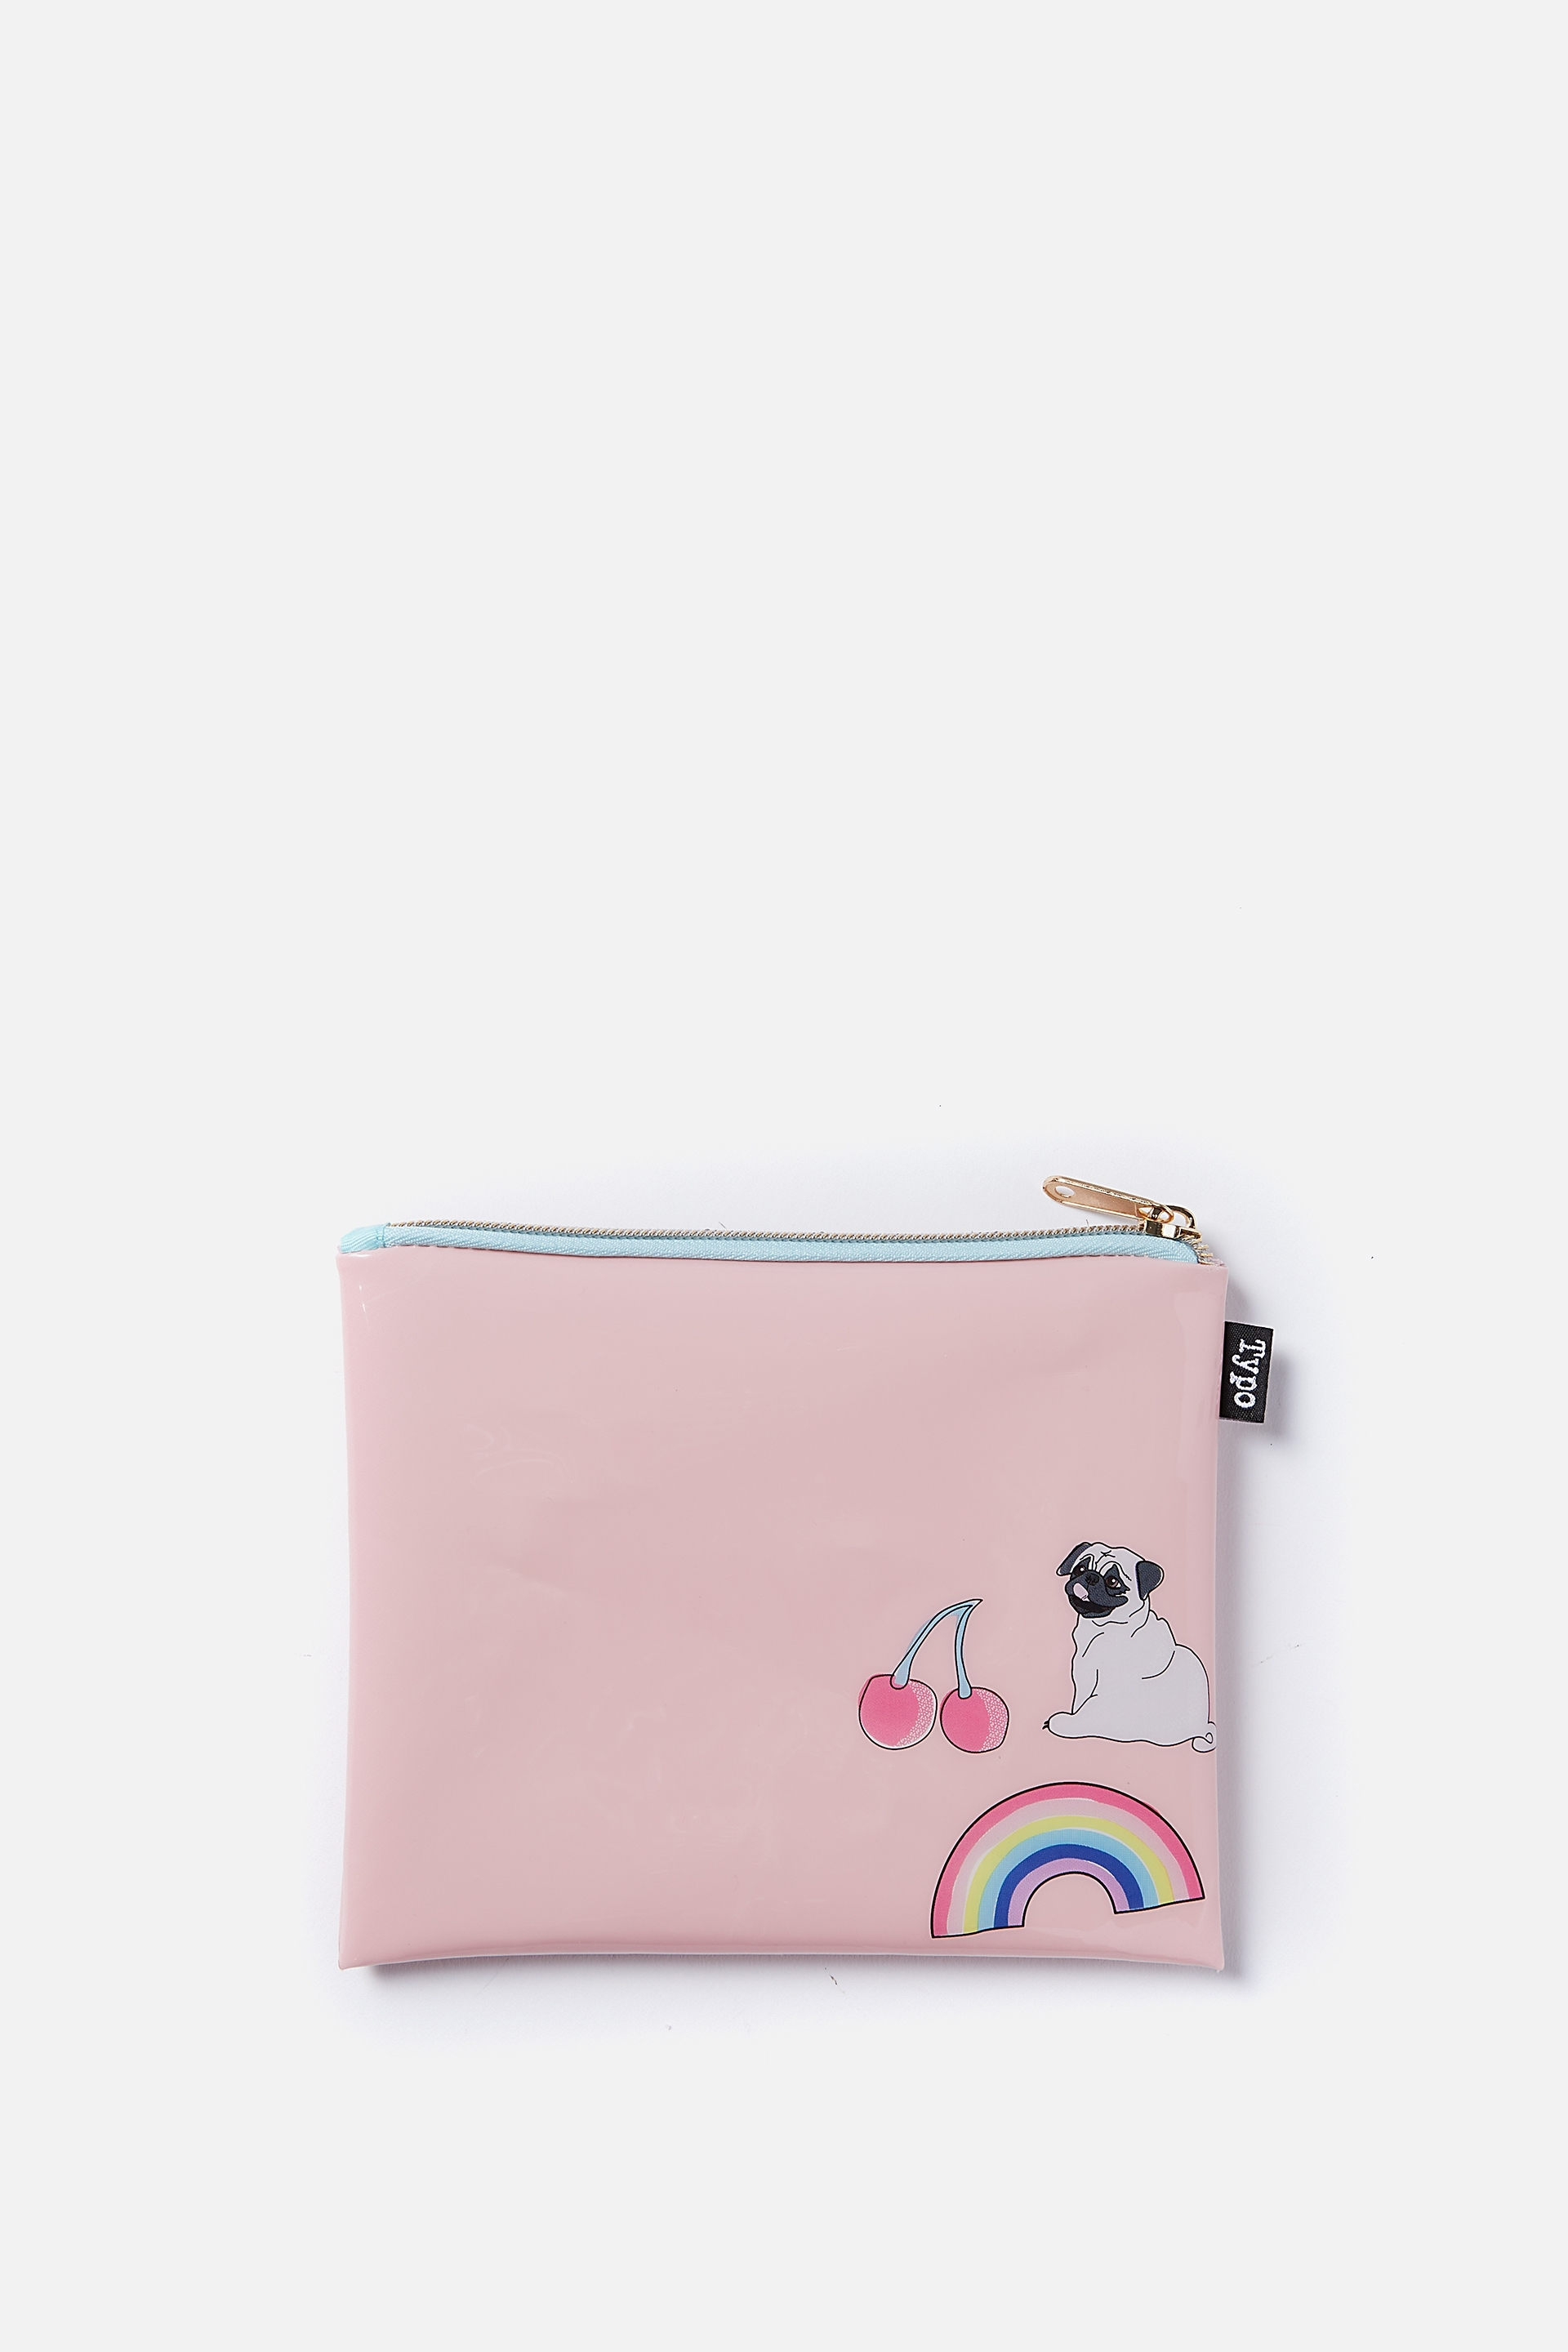 Typo - Spinout Pencil Case - Pug rainbow cherry 9352403065805